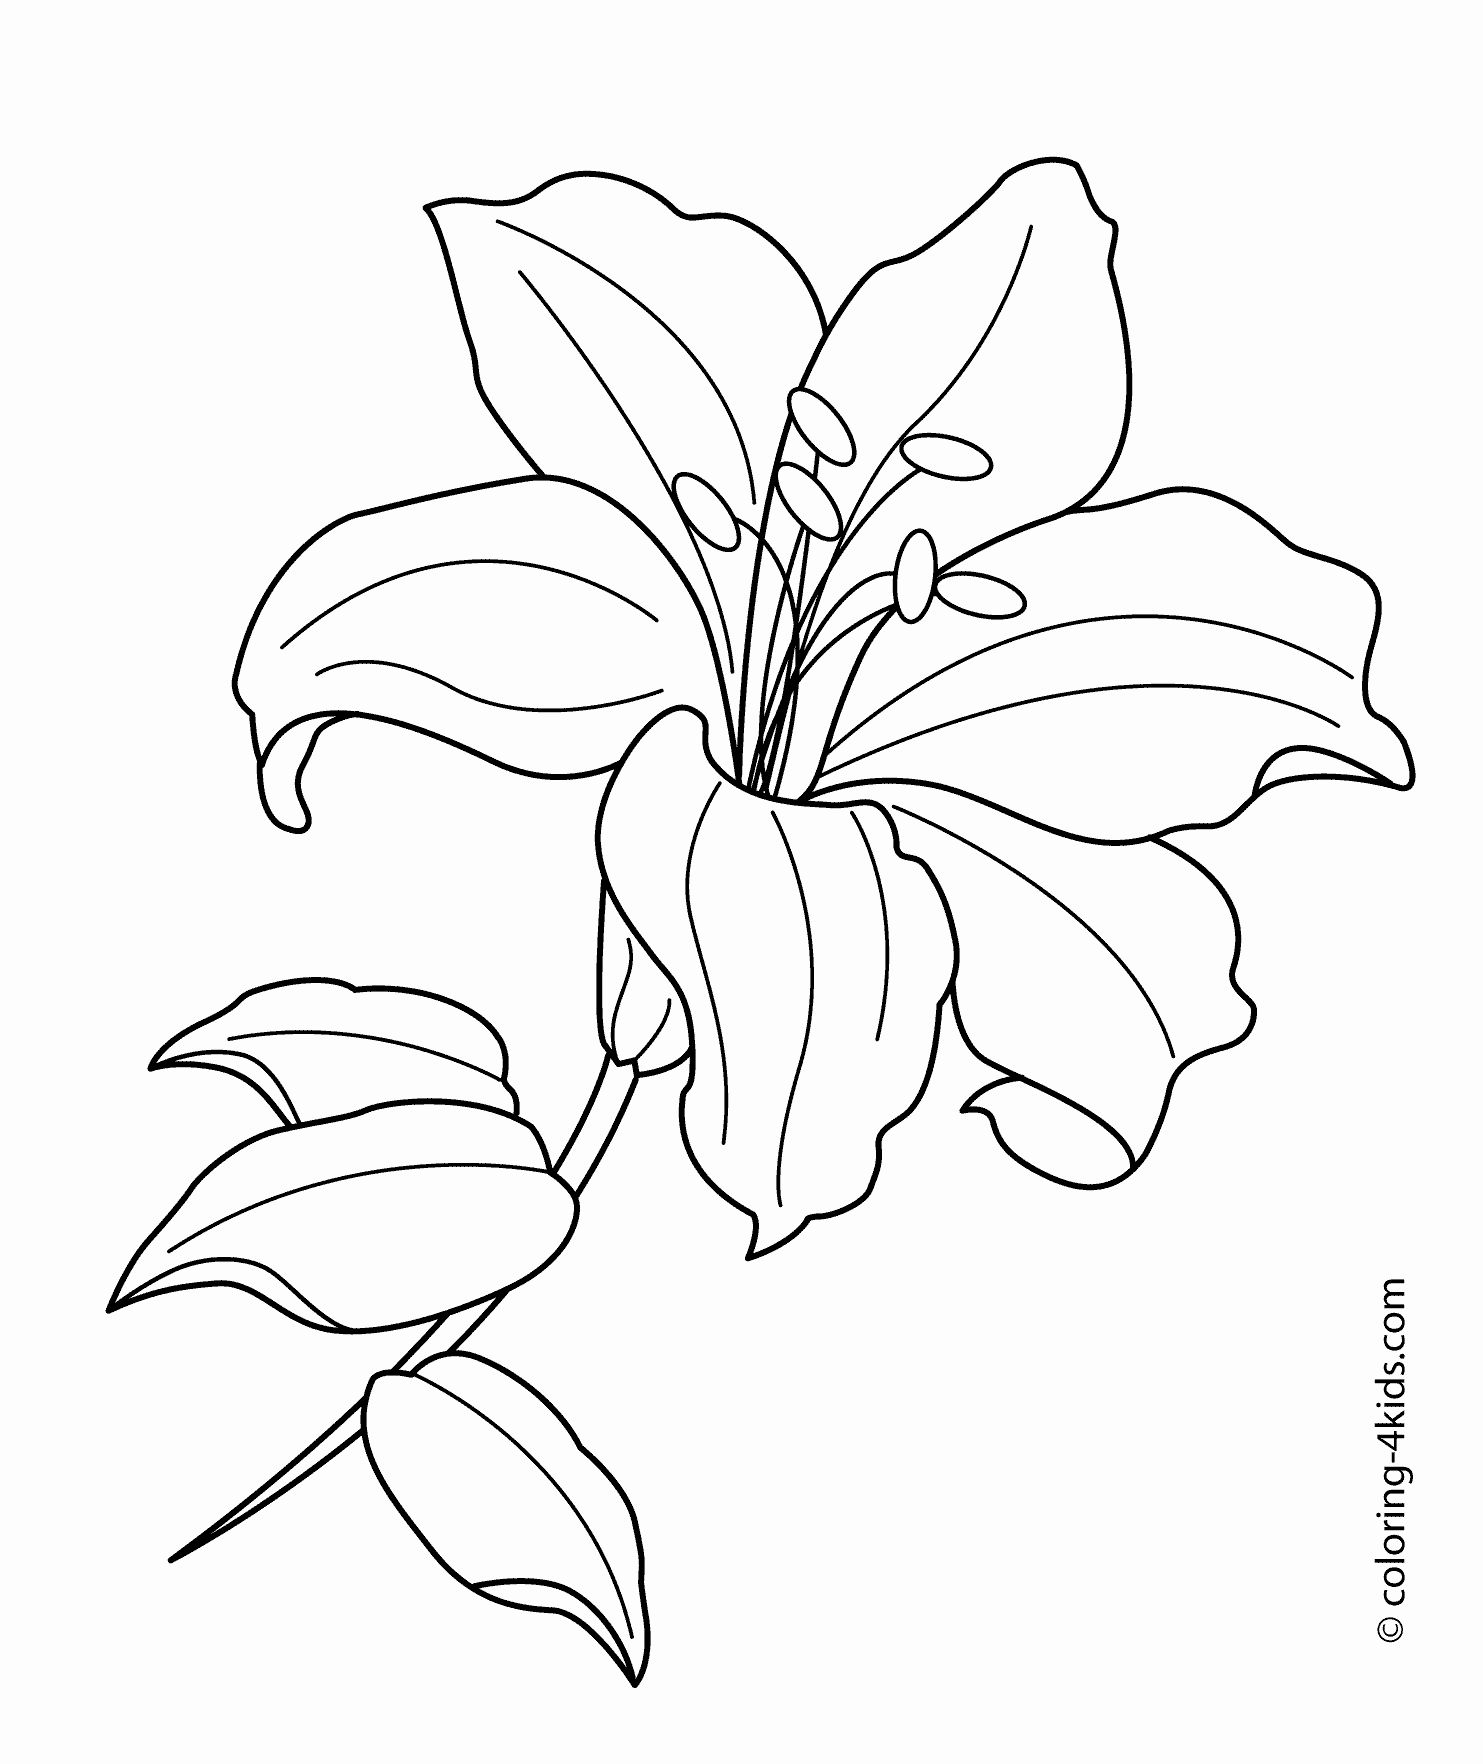 Easter Flower Coloring Pages in 2020 Lilies drawing